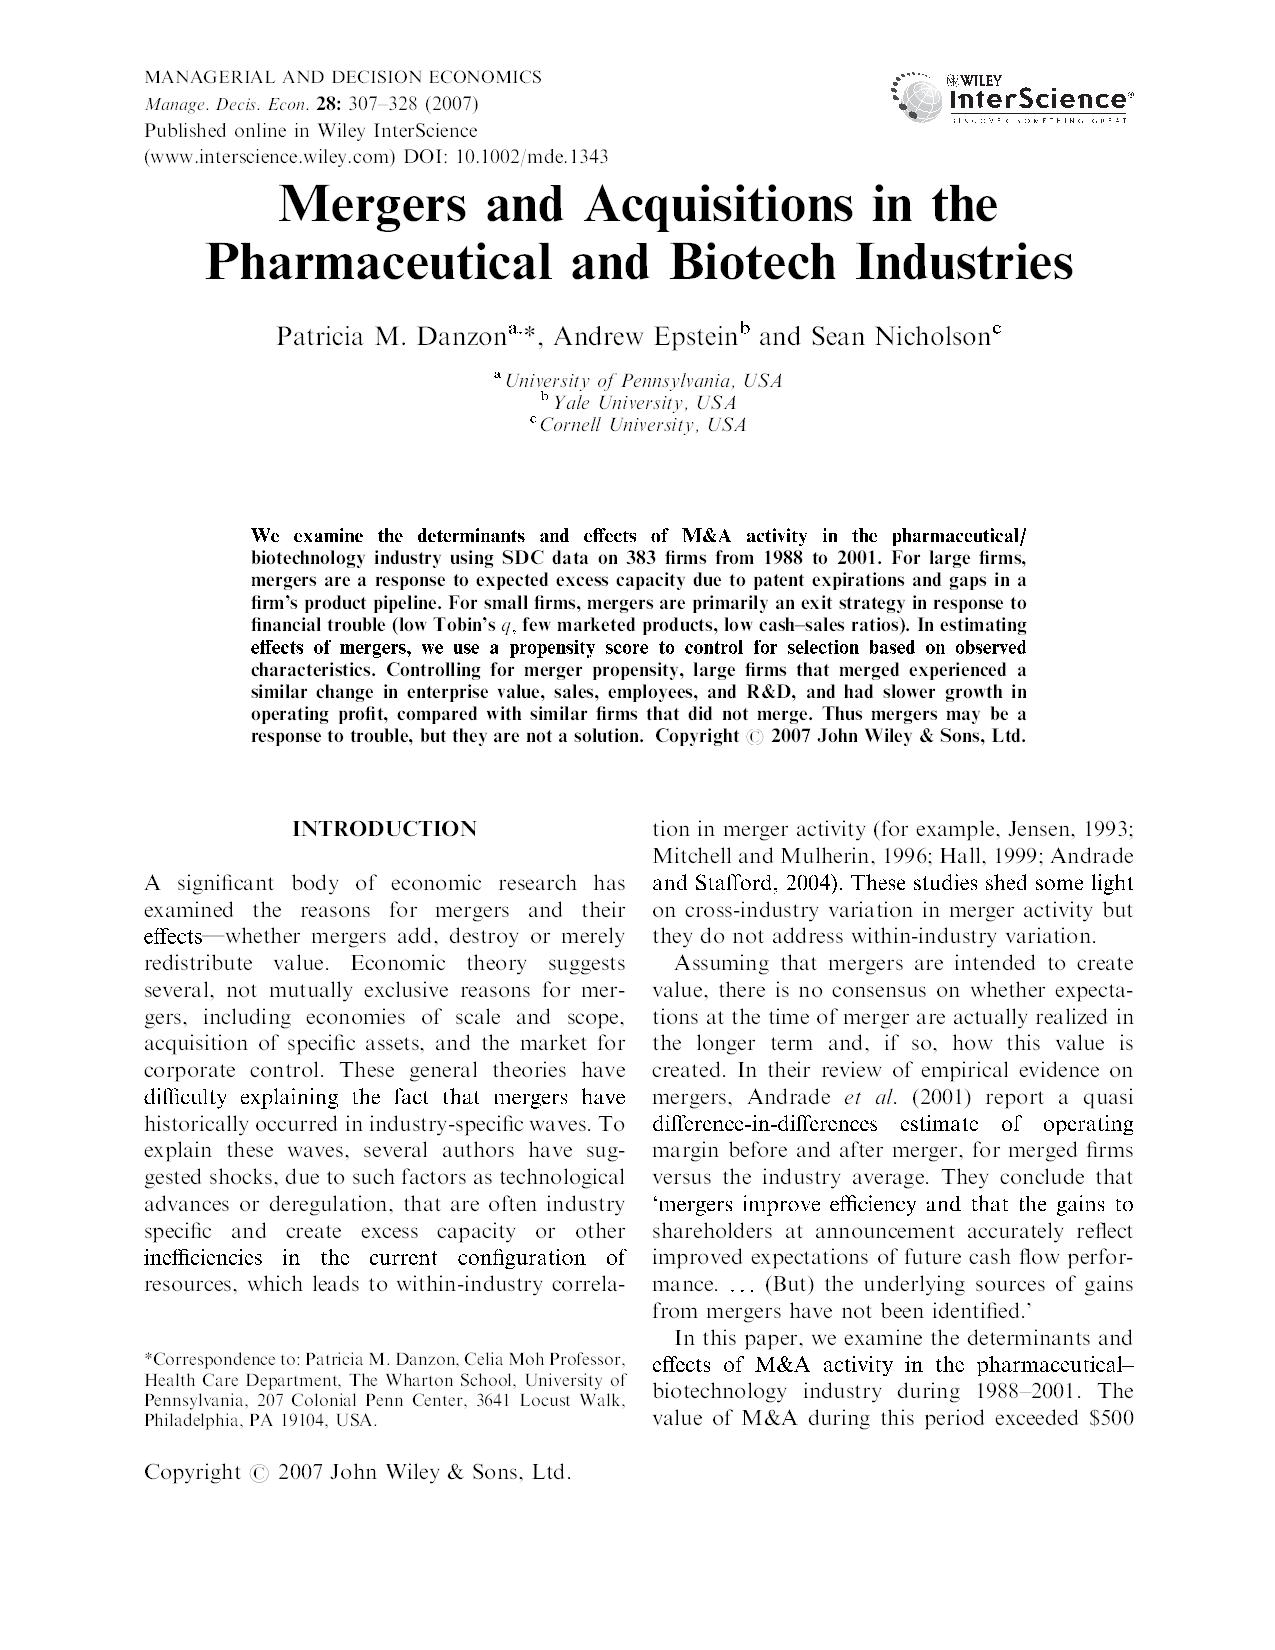 Mergers and Acquisitions in the Pharmaceutical and Biotech Industries 25